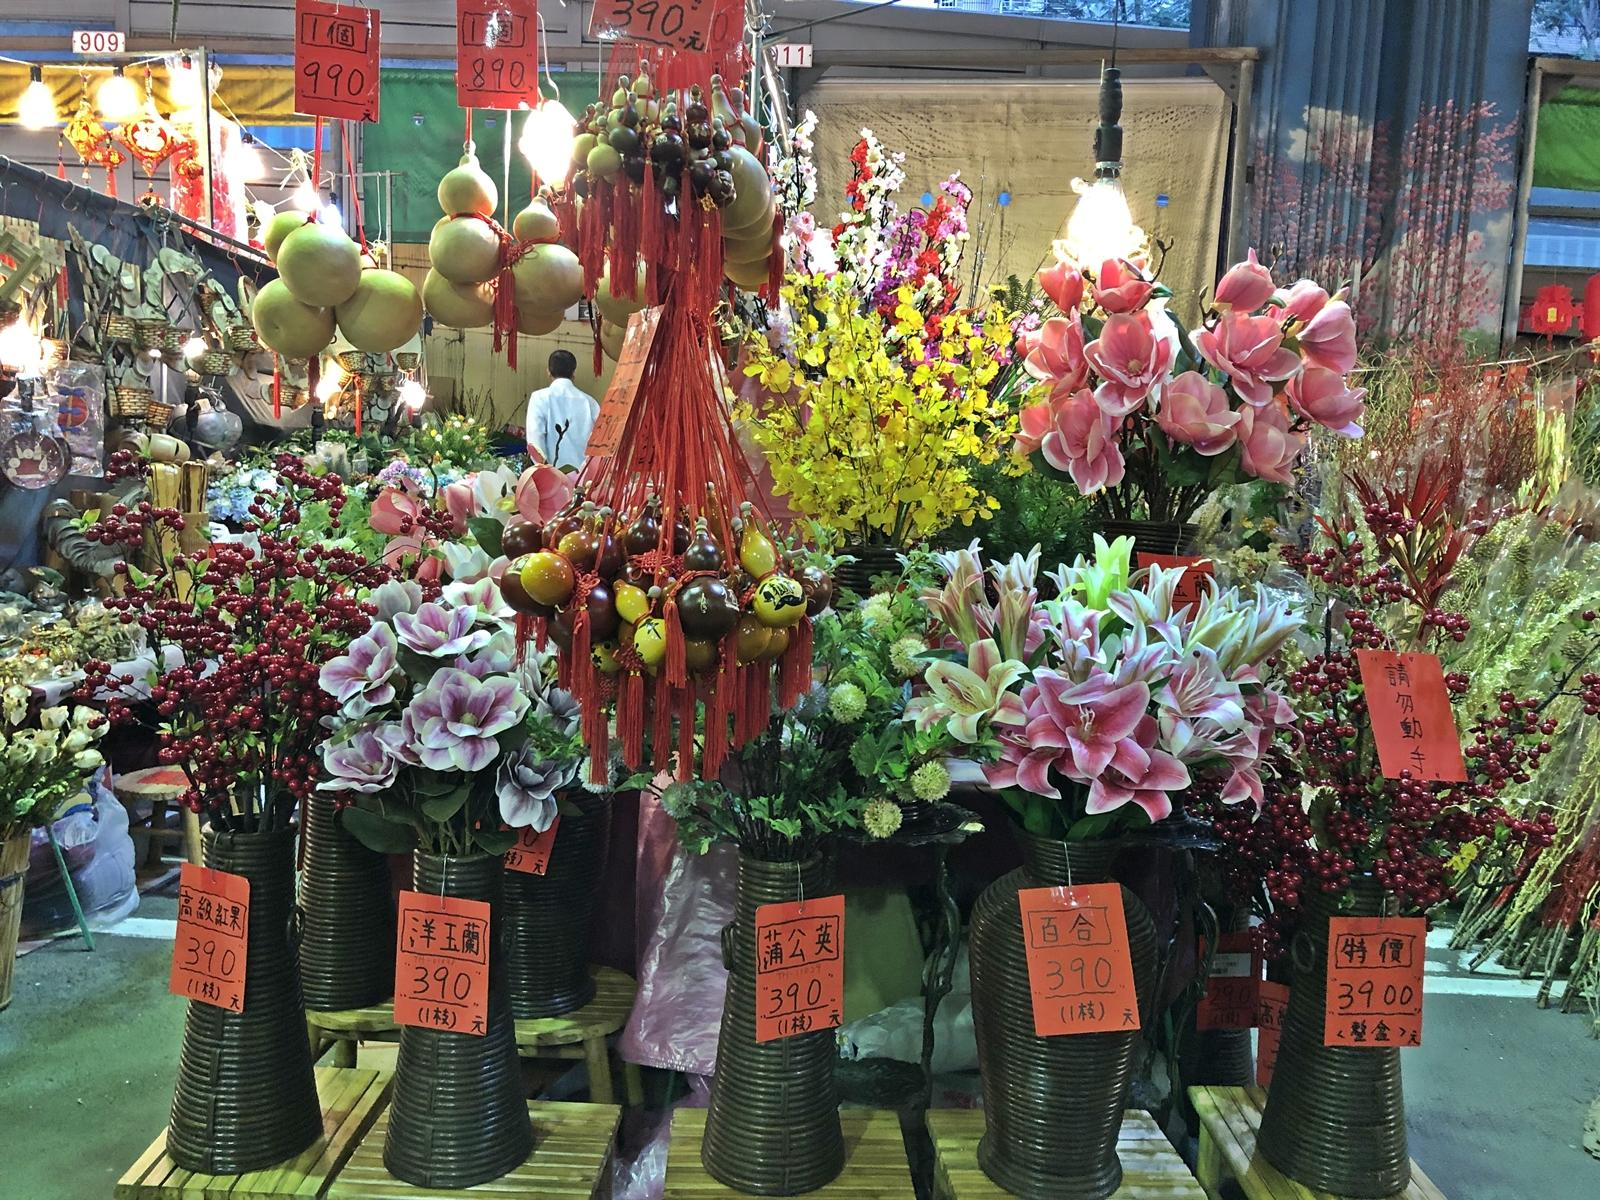 There are a wide varieties of beautiful flowers and plants sold at the floral bazaar in Taipei. (Image: Billy Shyu / Vision Times)